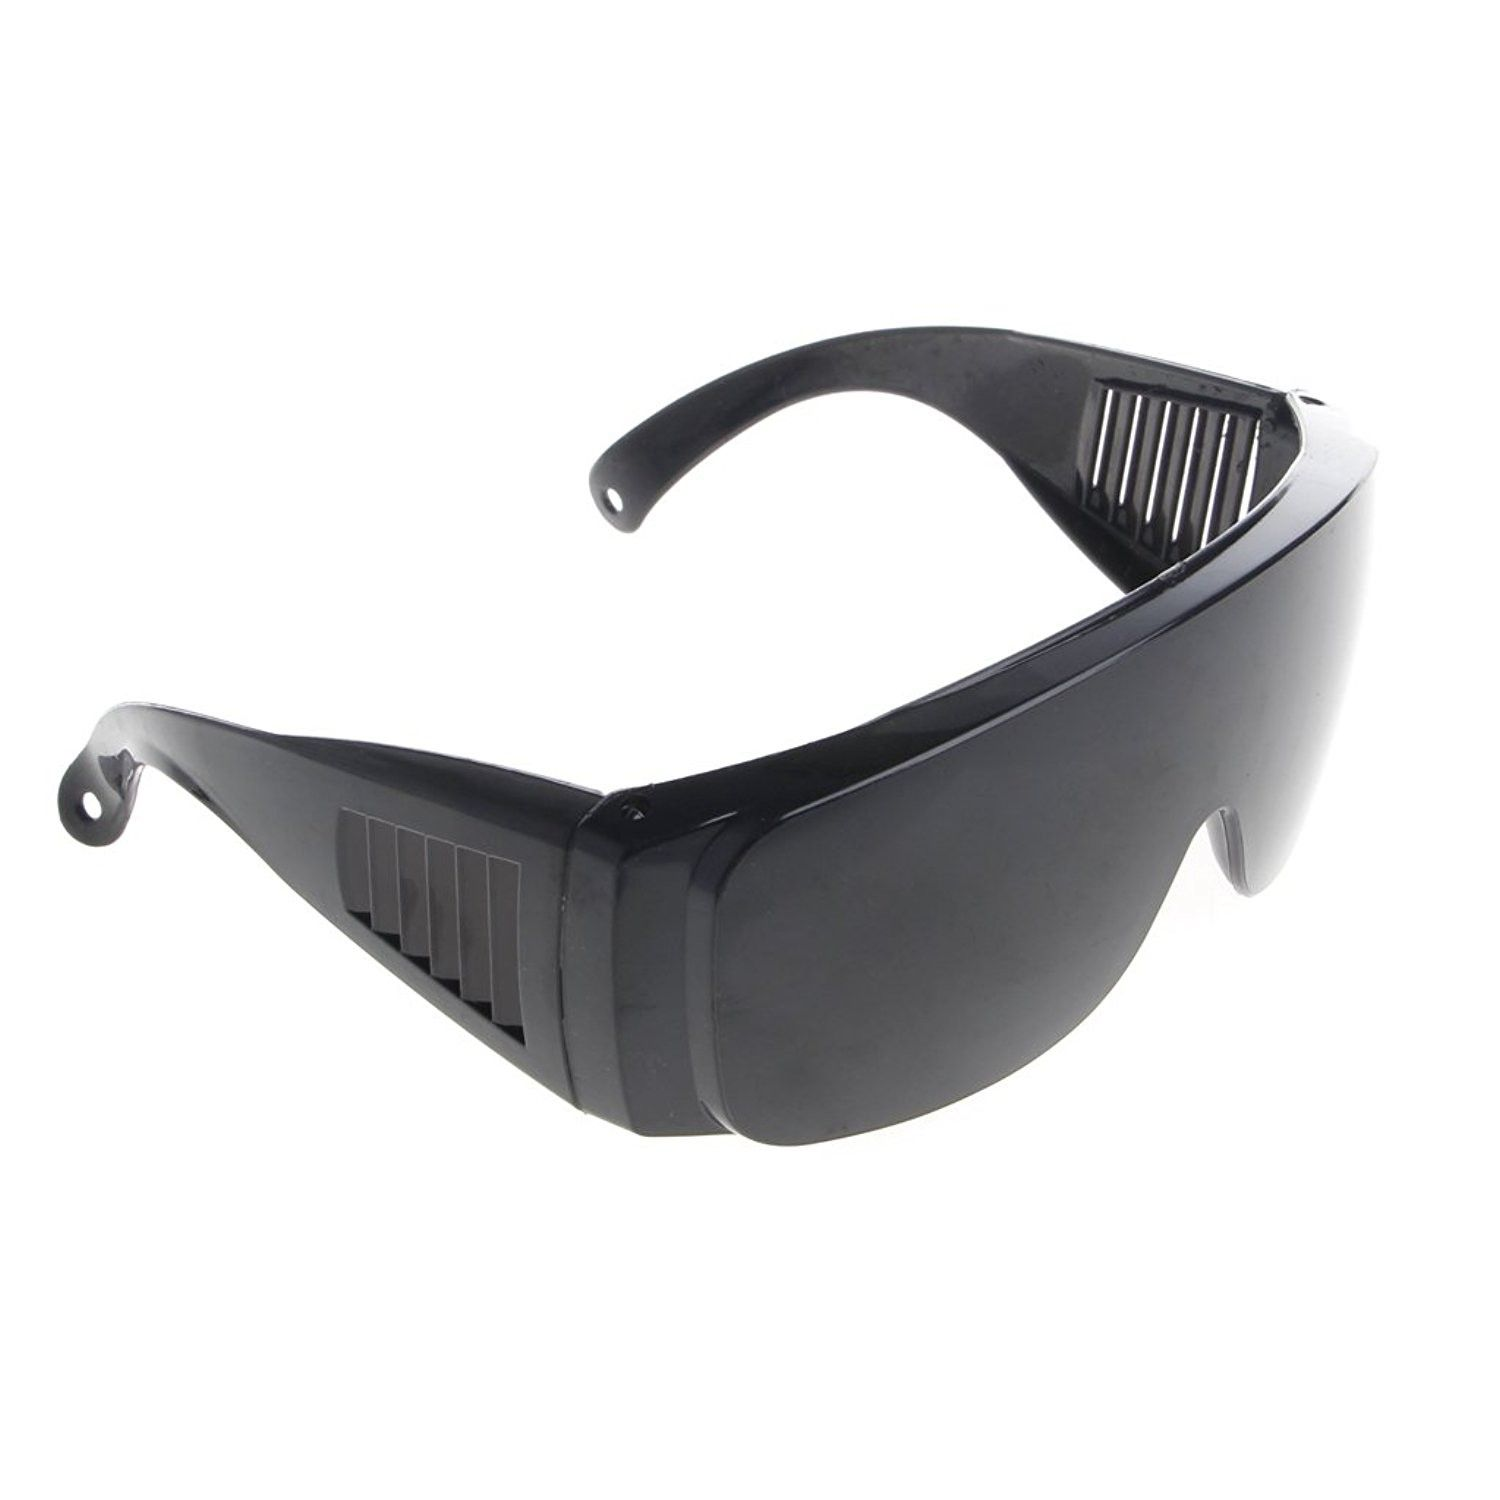 9463102dd1 Protective Safety Goggles Glasses Work Dental Eye Protection Spectacles  Eyewear - Black - CS1847M7474 - Men s Sunglasses